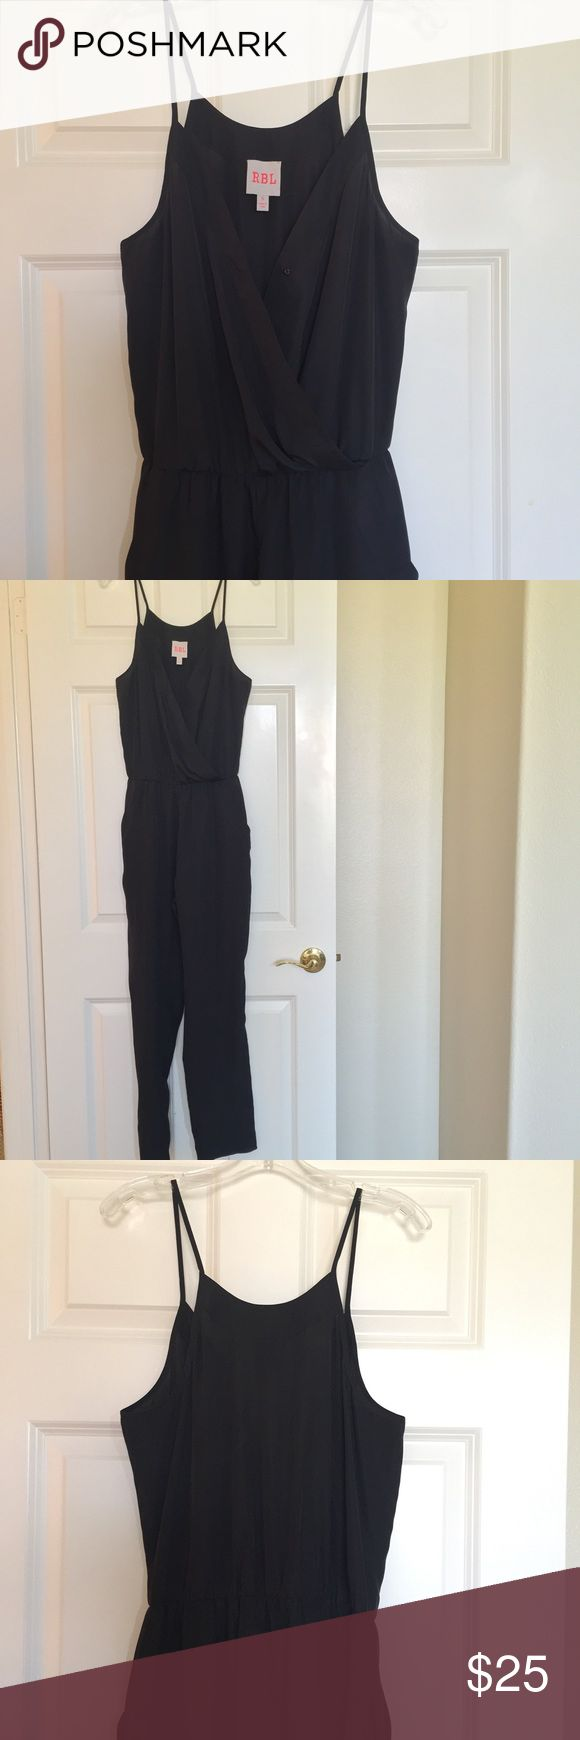 Black jumper This is a black jumper! It has pockets and has a cross cross chest line. It scrunches right at the waist making it very flattering. RBL Other